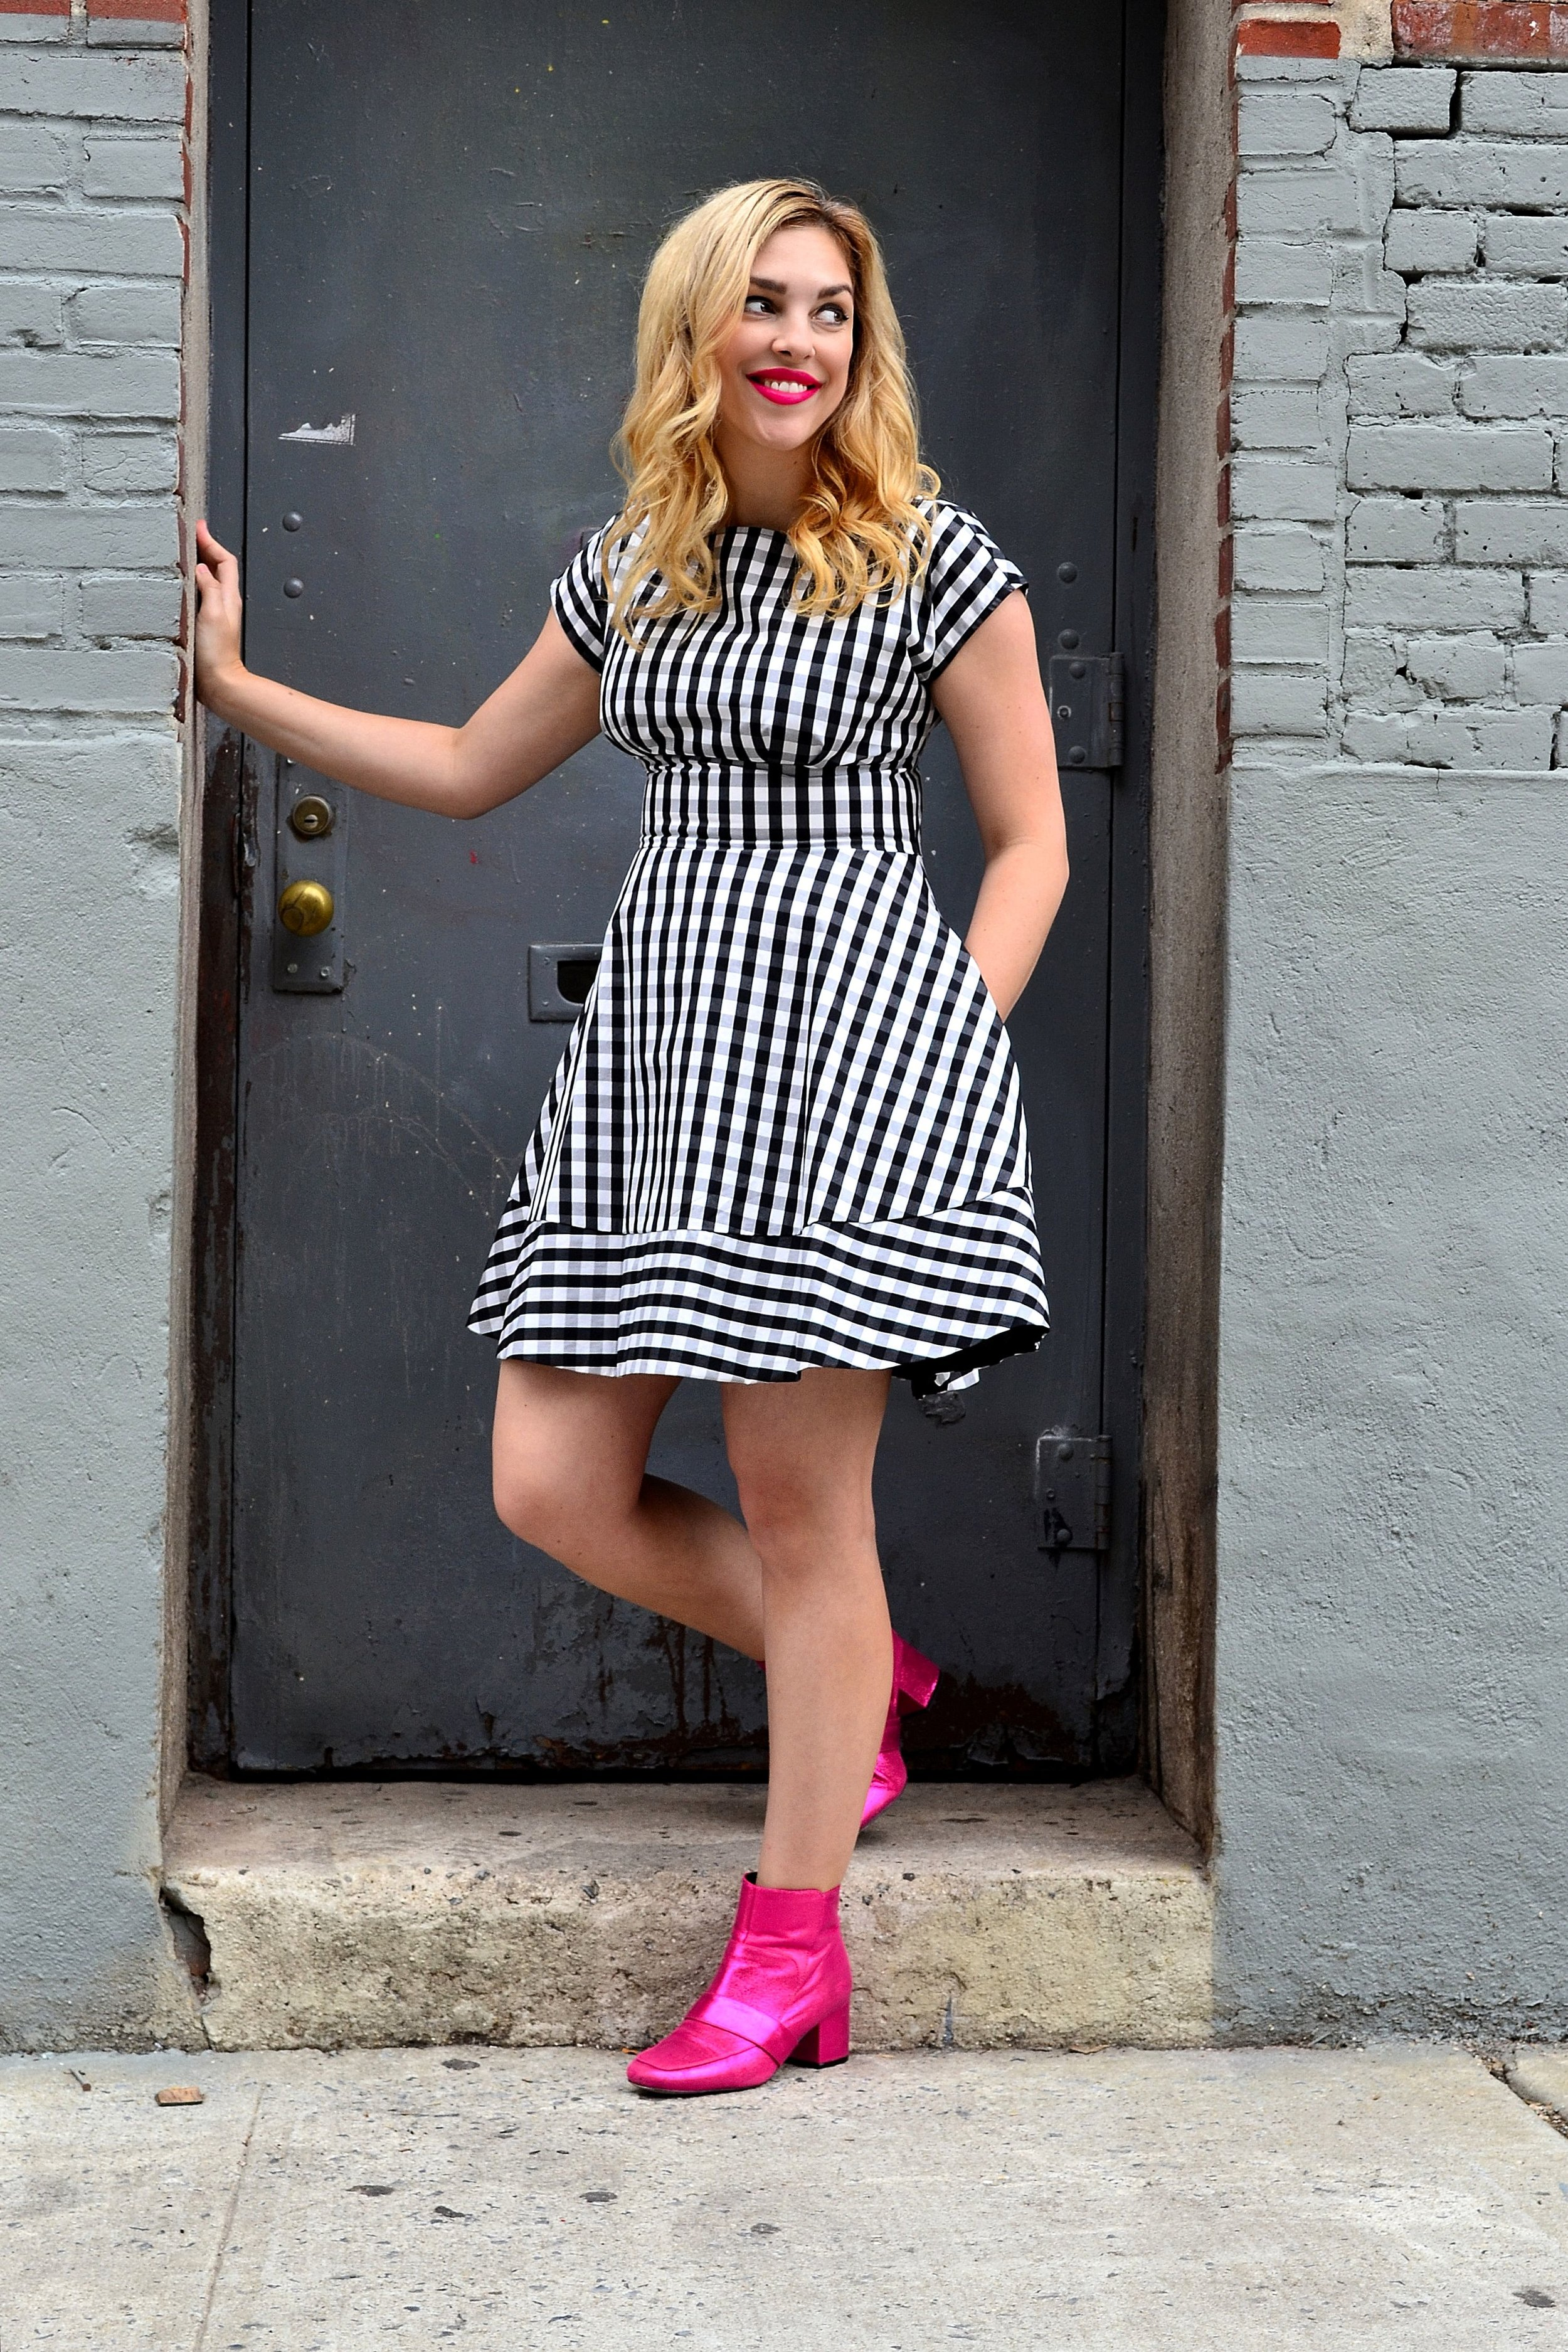 kate spade dress asos pink booties.JPG